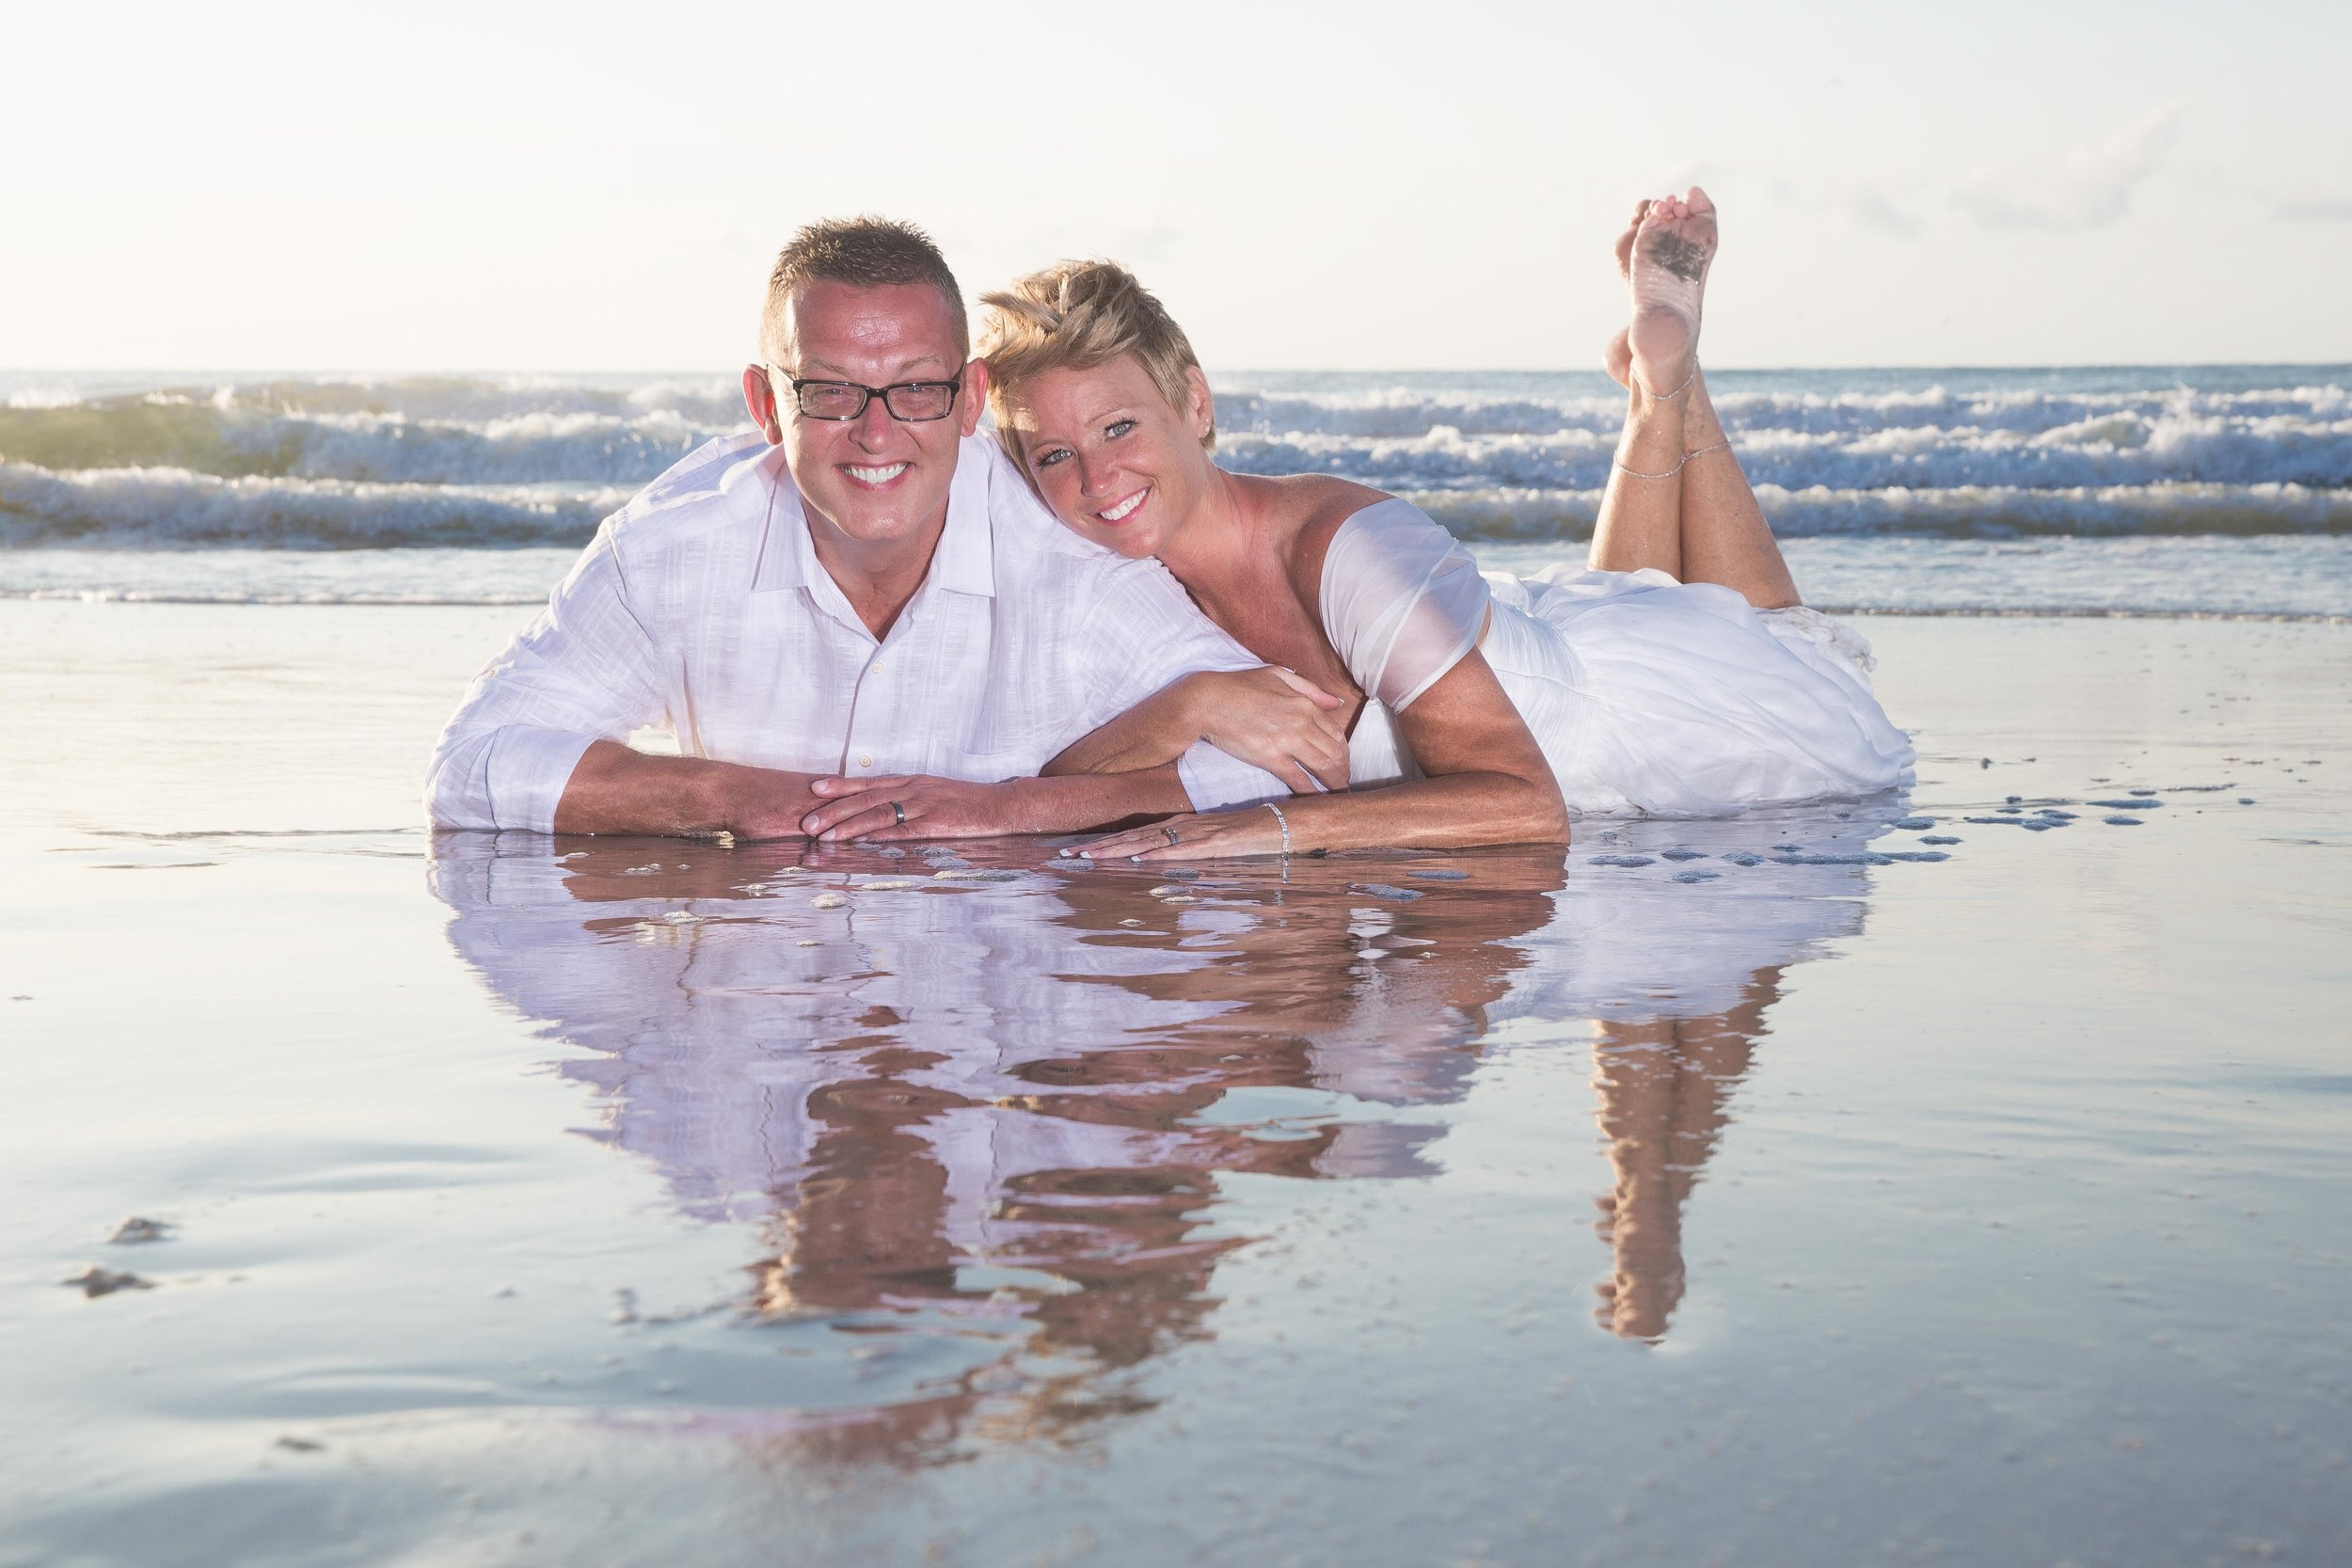 Husband and wife lay in shallow water of the beach smiling together at the camera